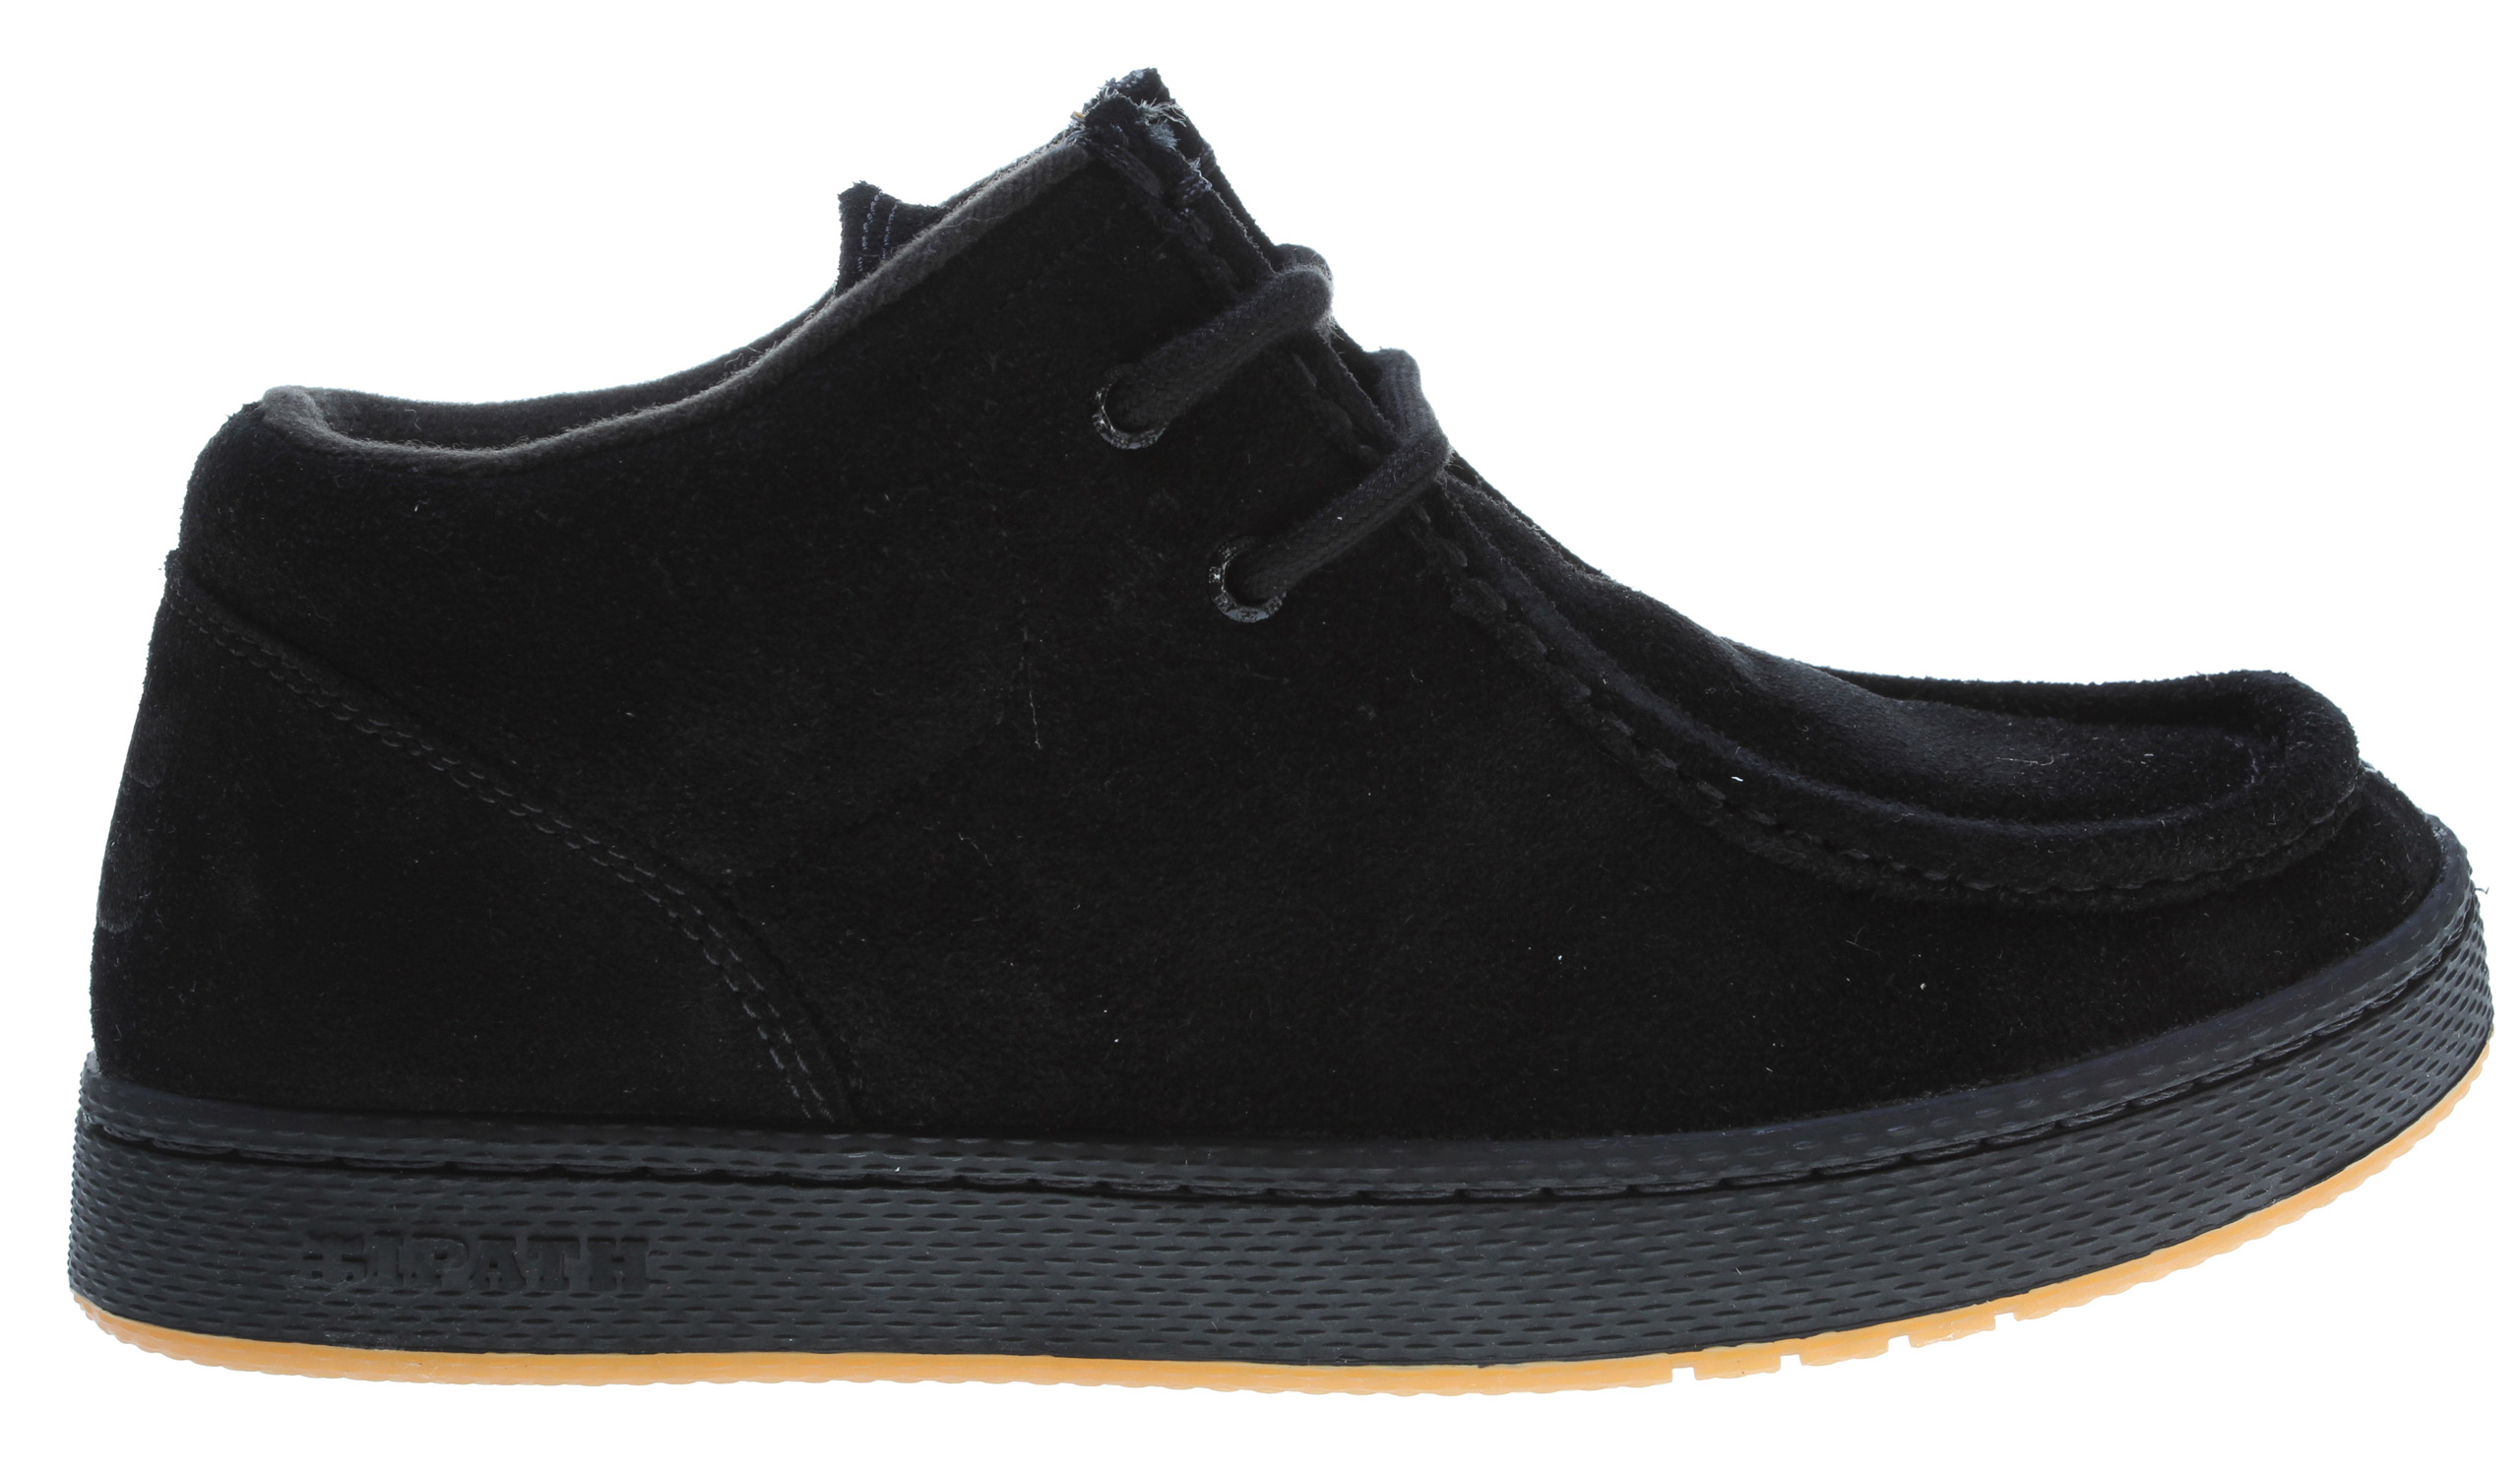 Skateboard The Ipath Cats Skate Shoes Shoe is a classic, true piece of IPATH'S heritage. They pulled out all the stops for this cult classic and made versions in high end black leather with sherpa lining and a brown nubuck. - $48.95